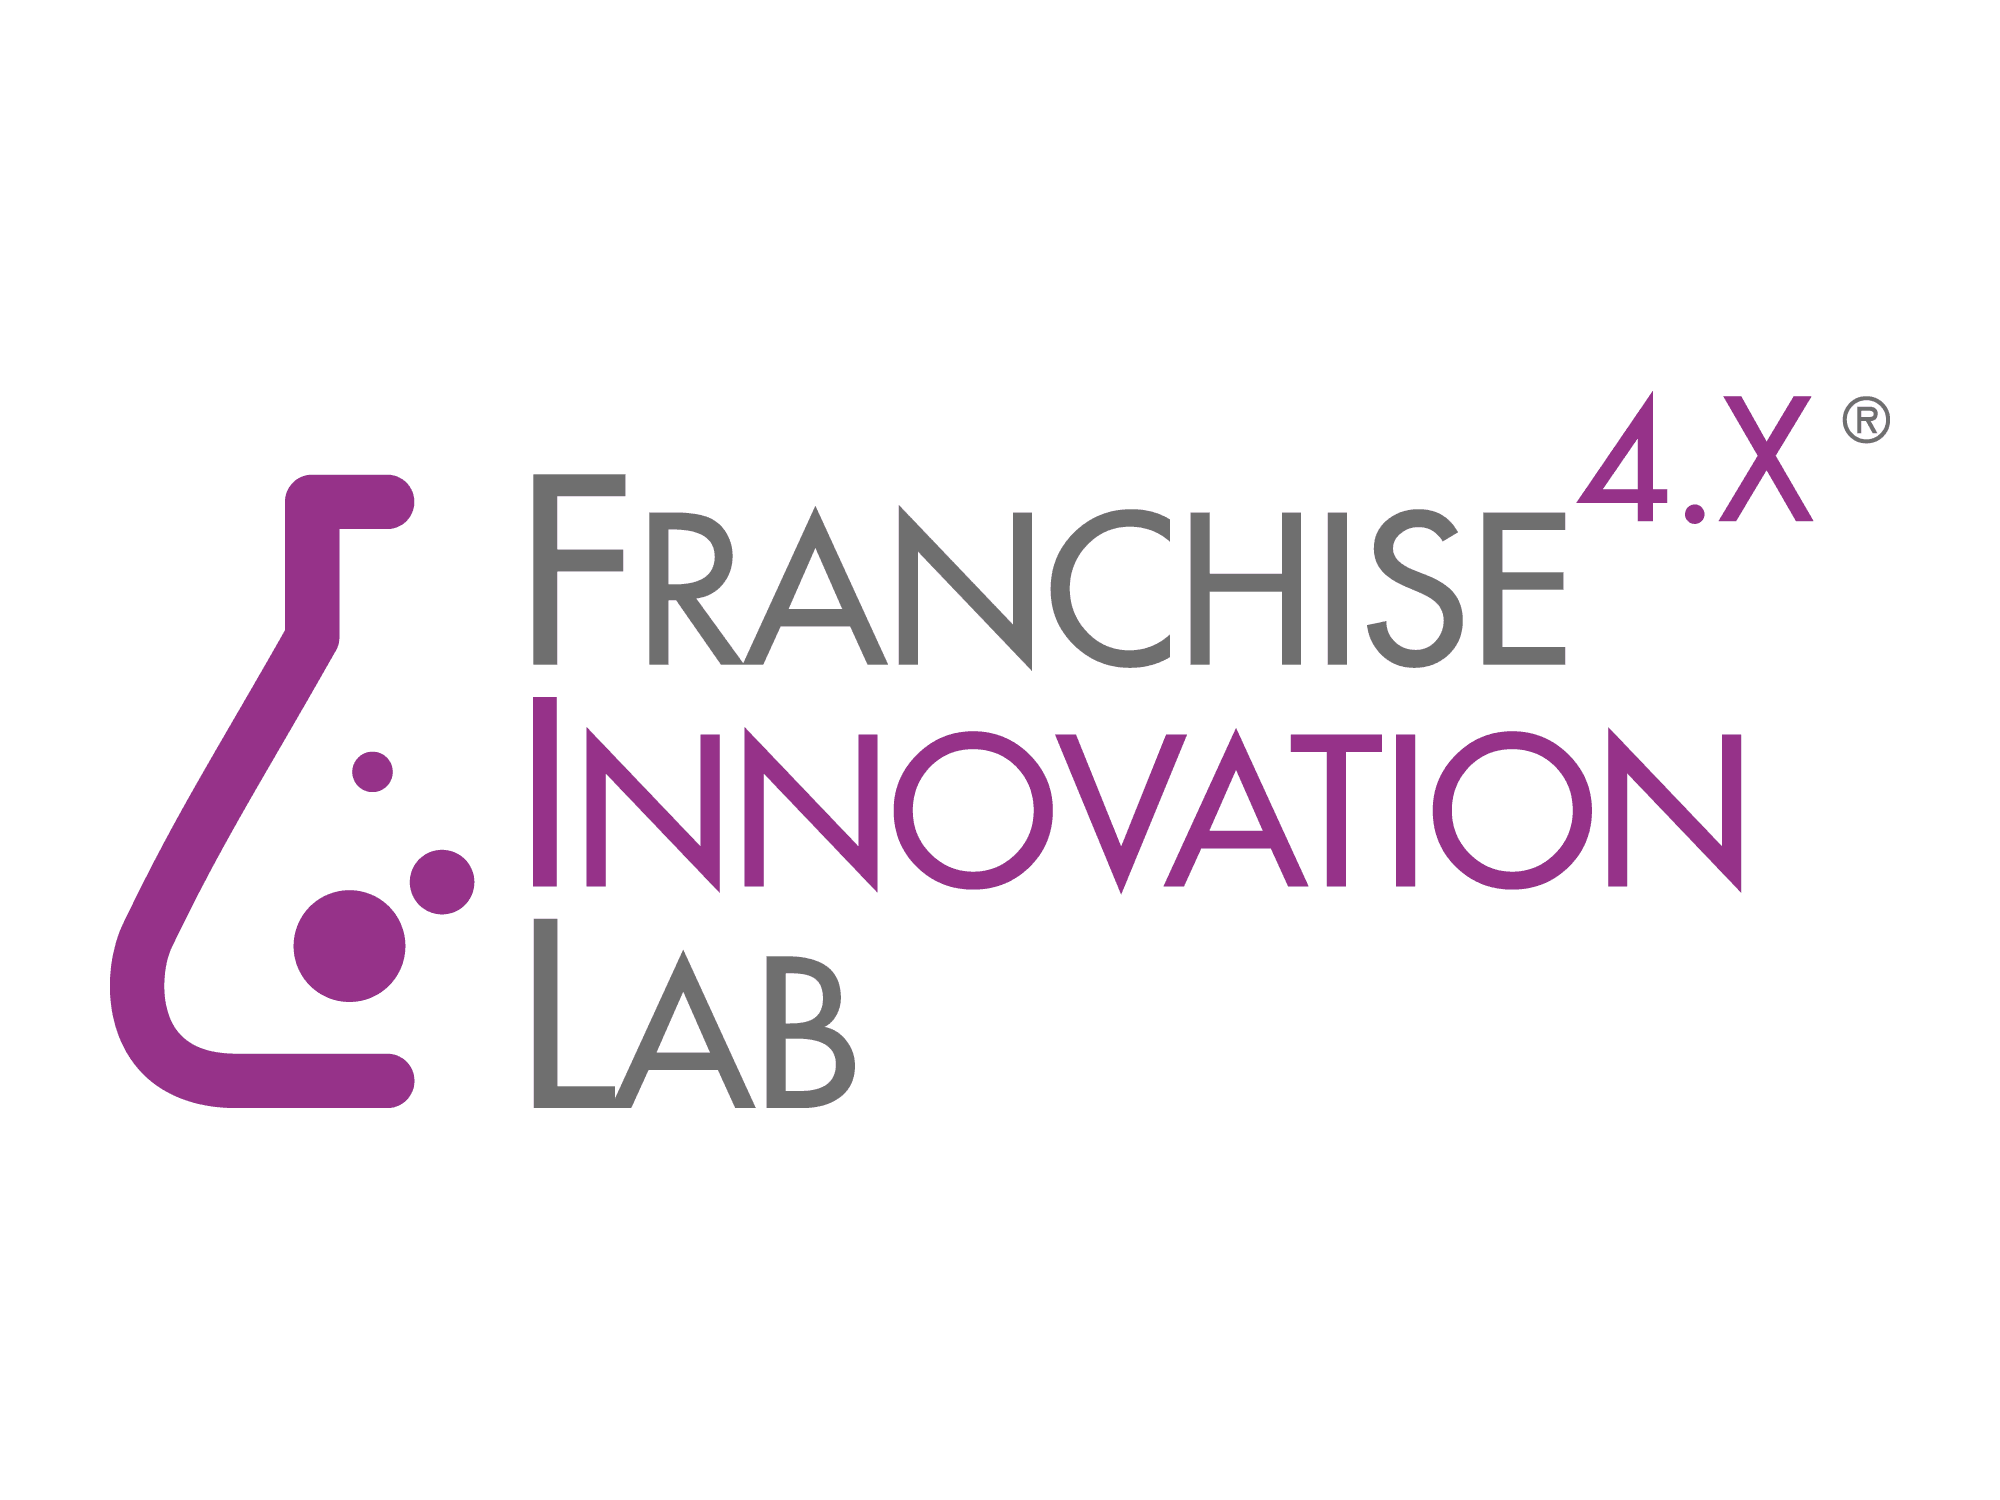 Franchise 4.X InnovationLAB